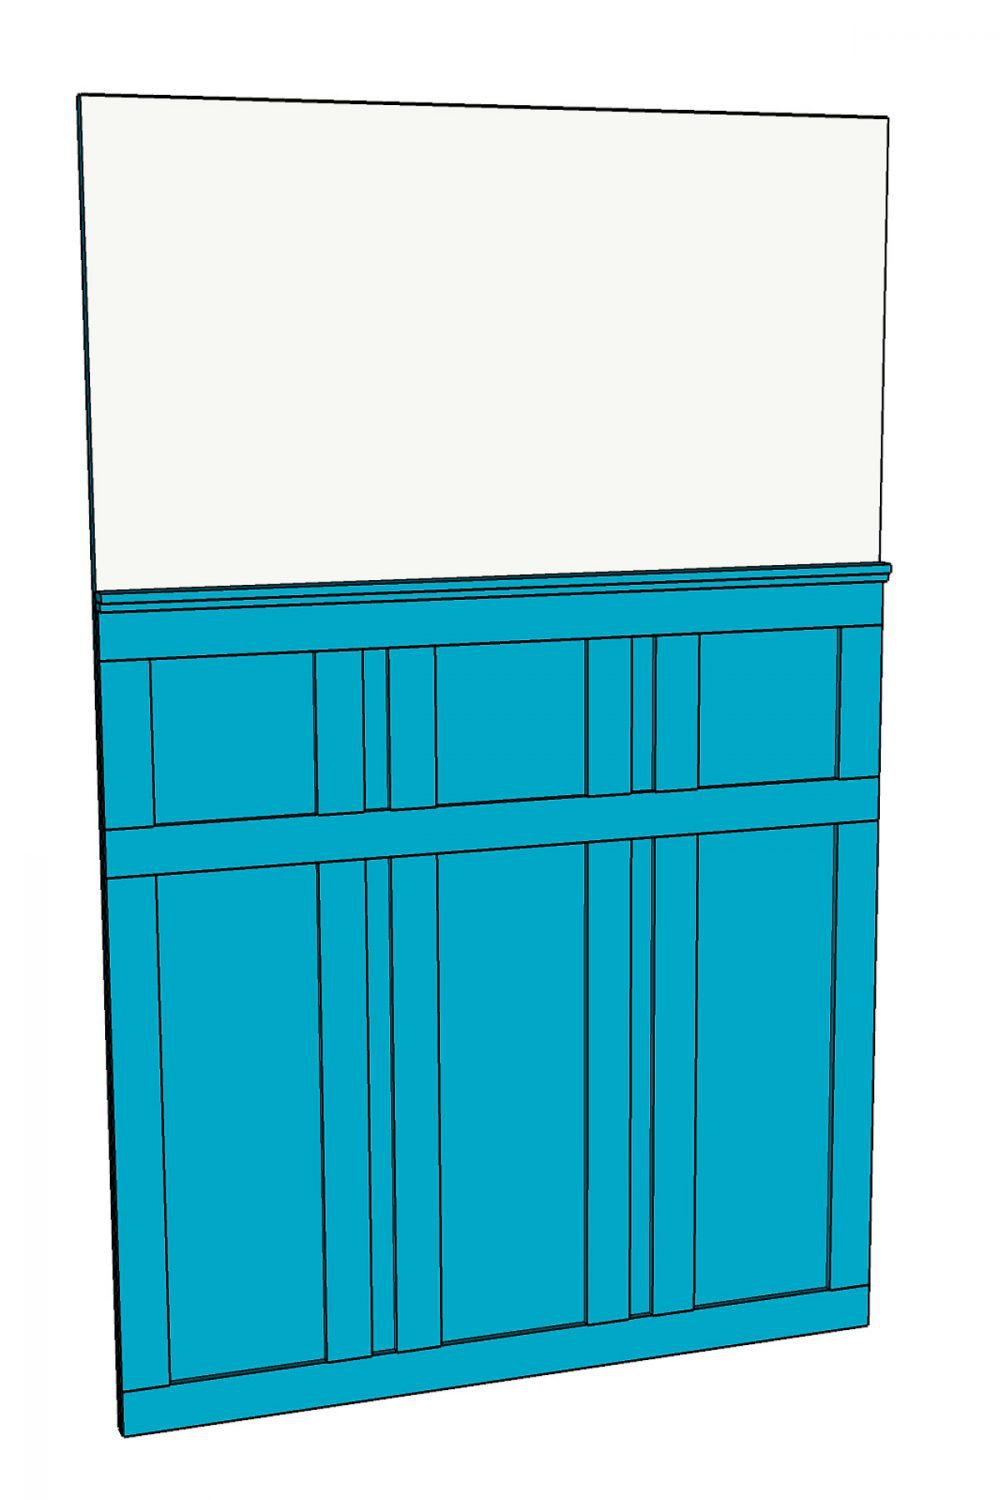 3D SketchUp drawing of the wall behind the door with board and batten painted blue on it.